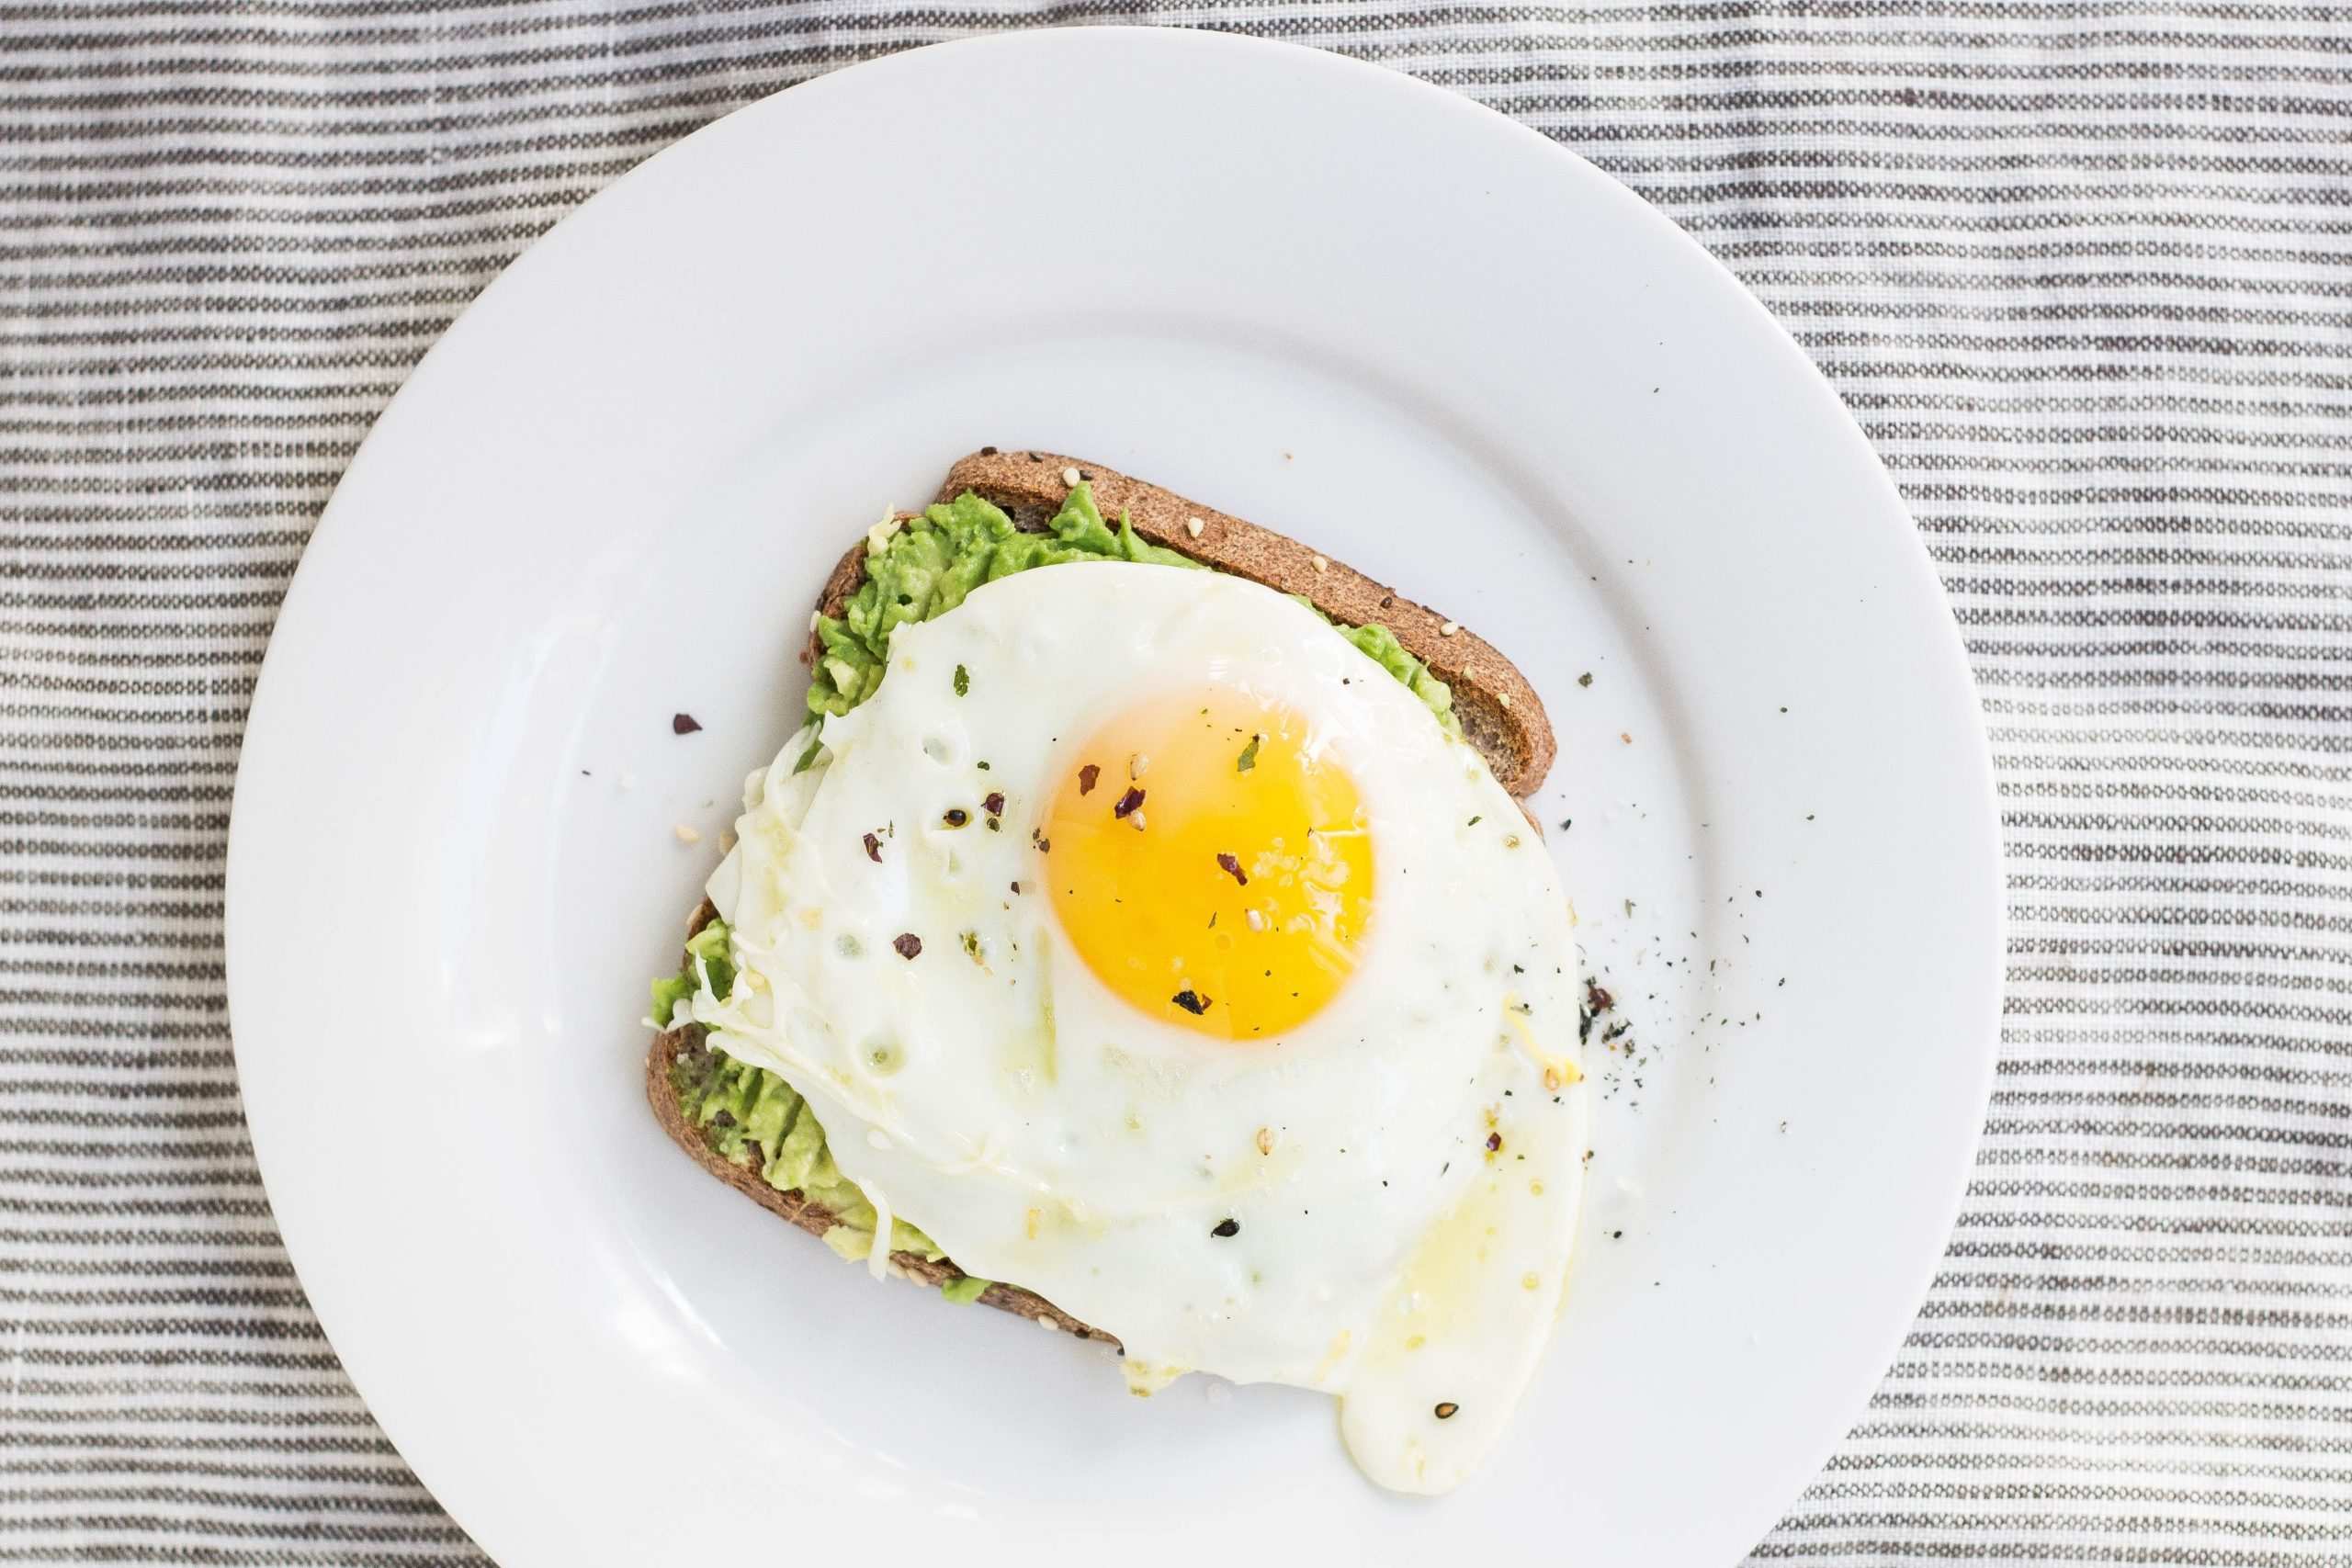 Protein at Breakfast and Lunch Boosts Muscle Mass